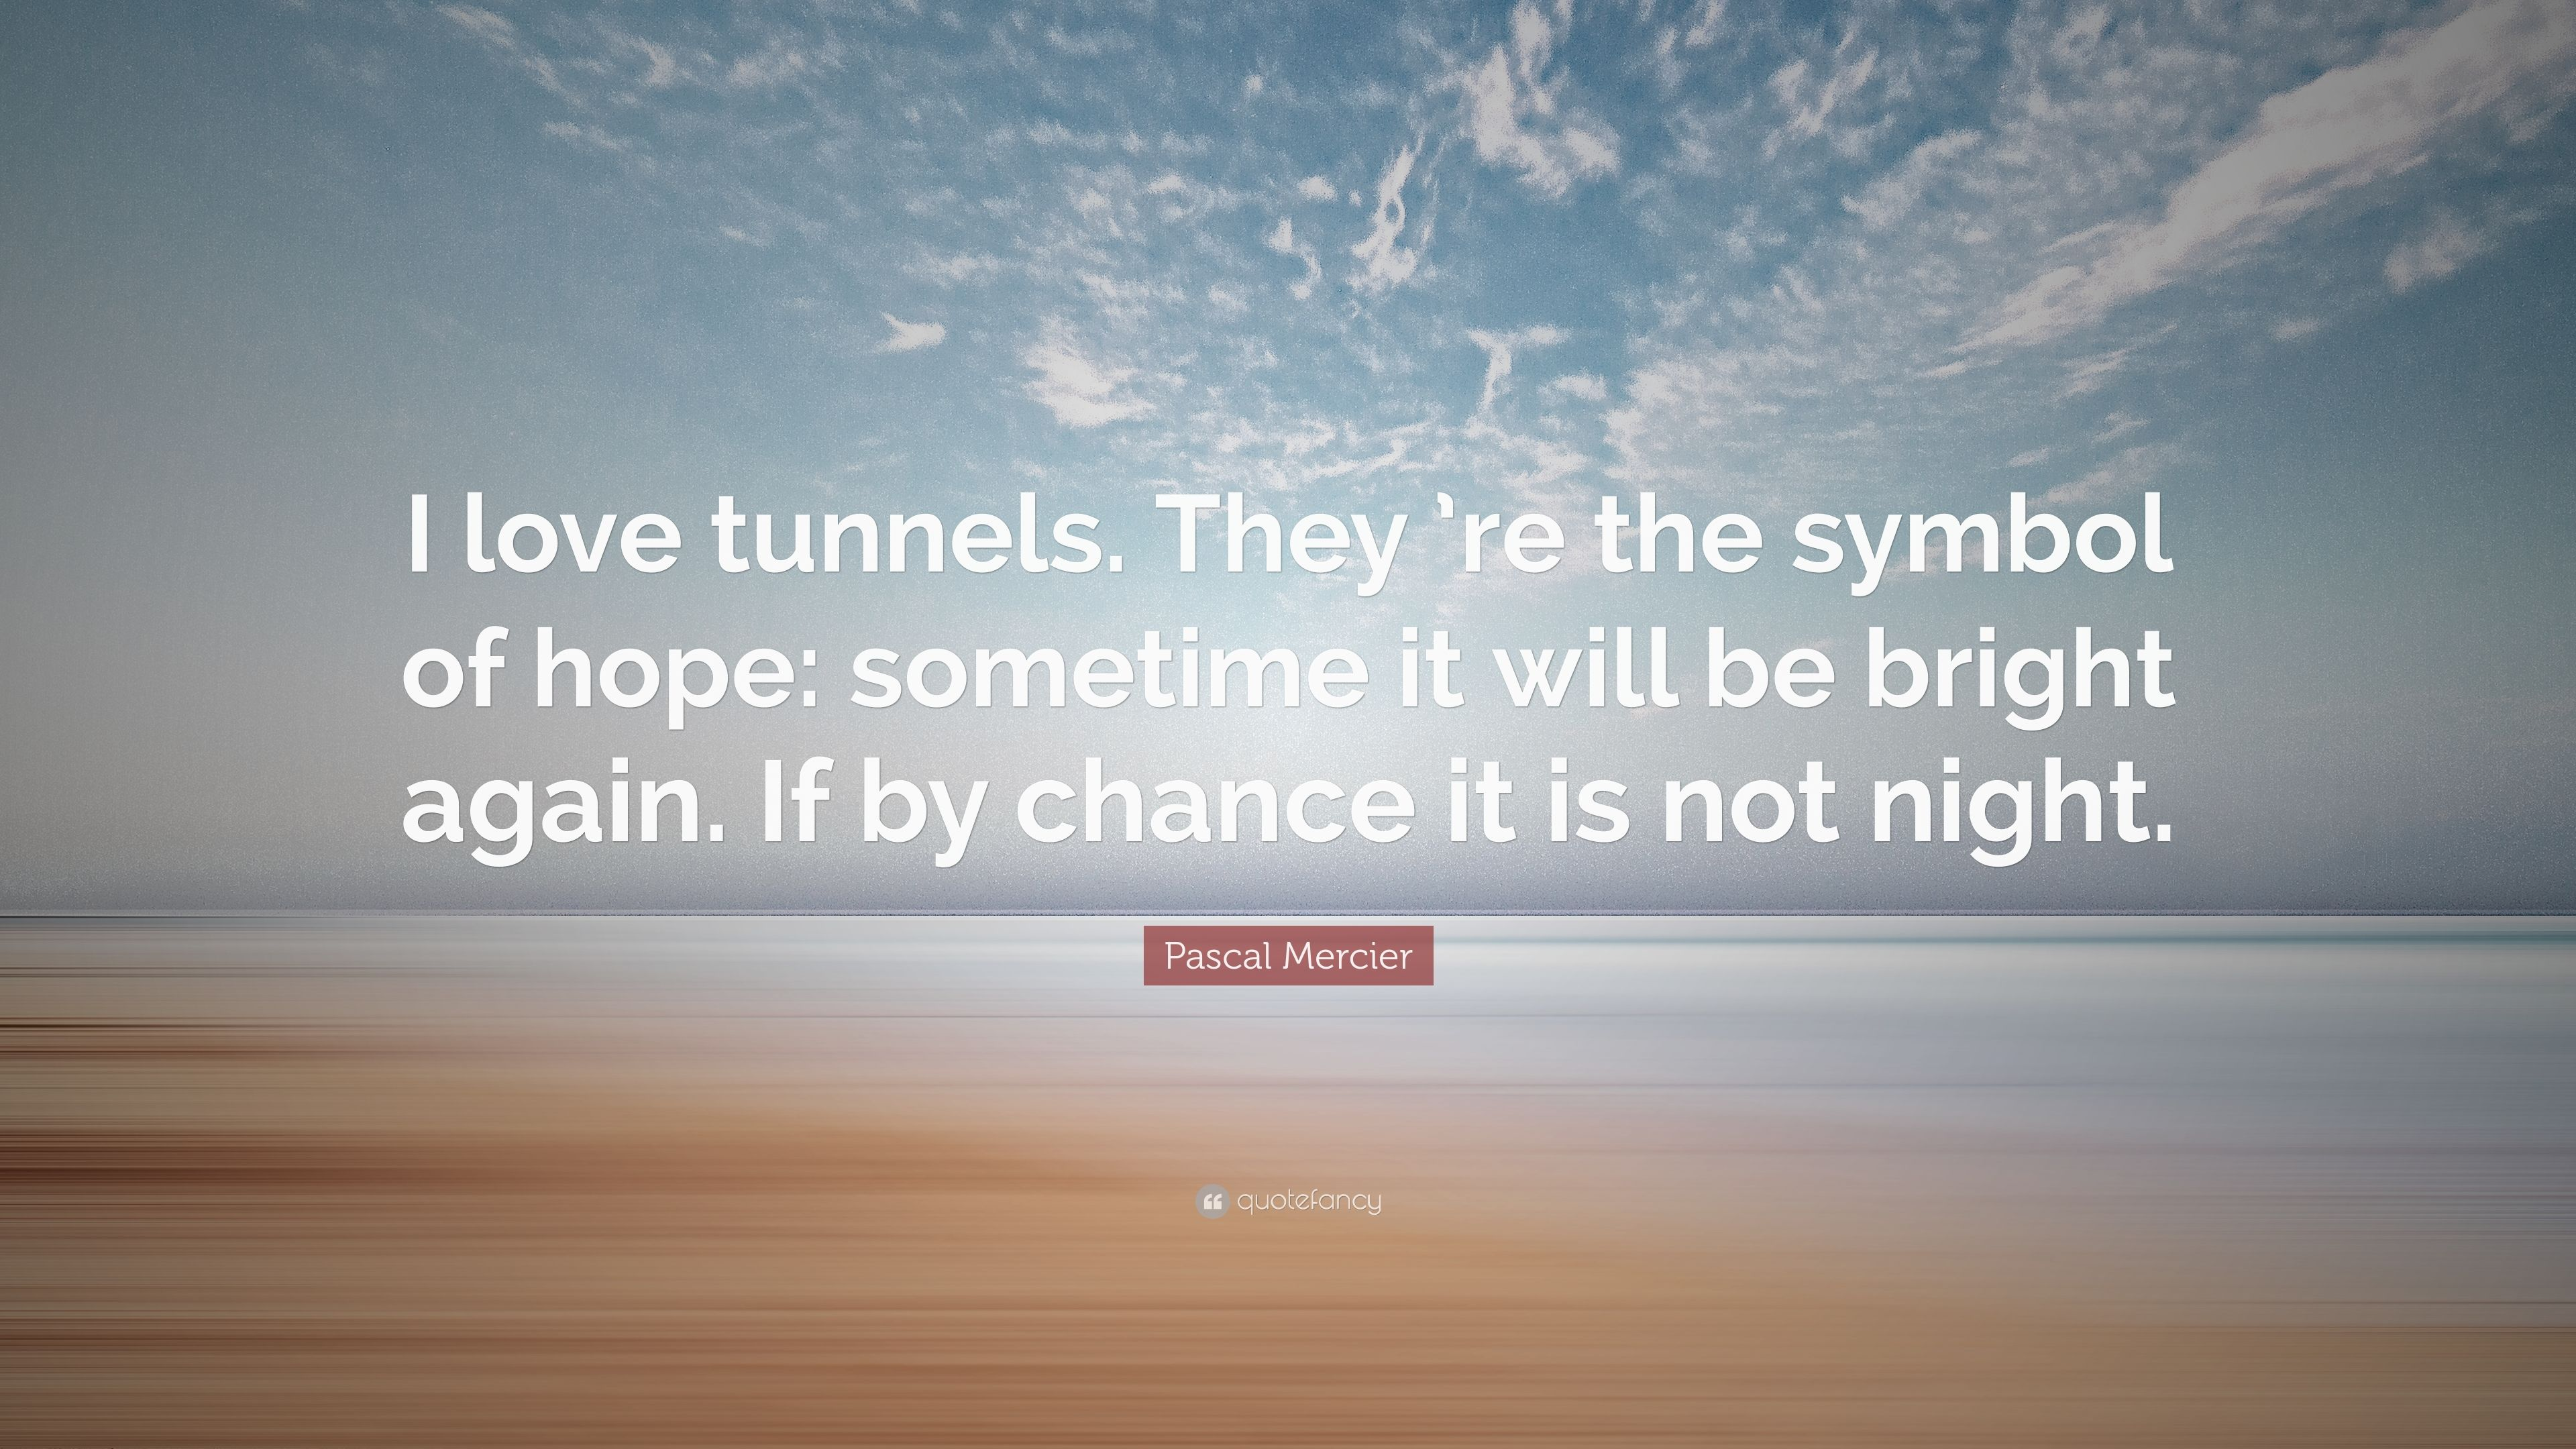 Pascal mercier quote i love tunnels they re the symbol of hope pascal mercier quote i love tunnels they re the symbol of hope buycottarizona Image collections